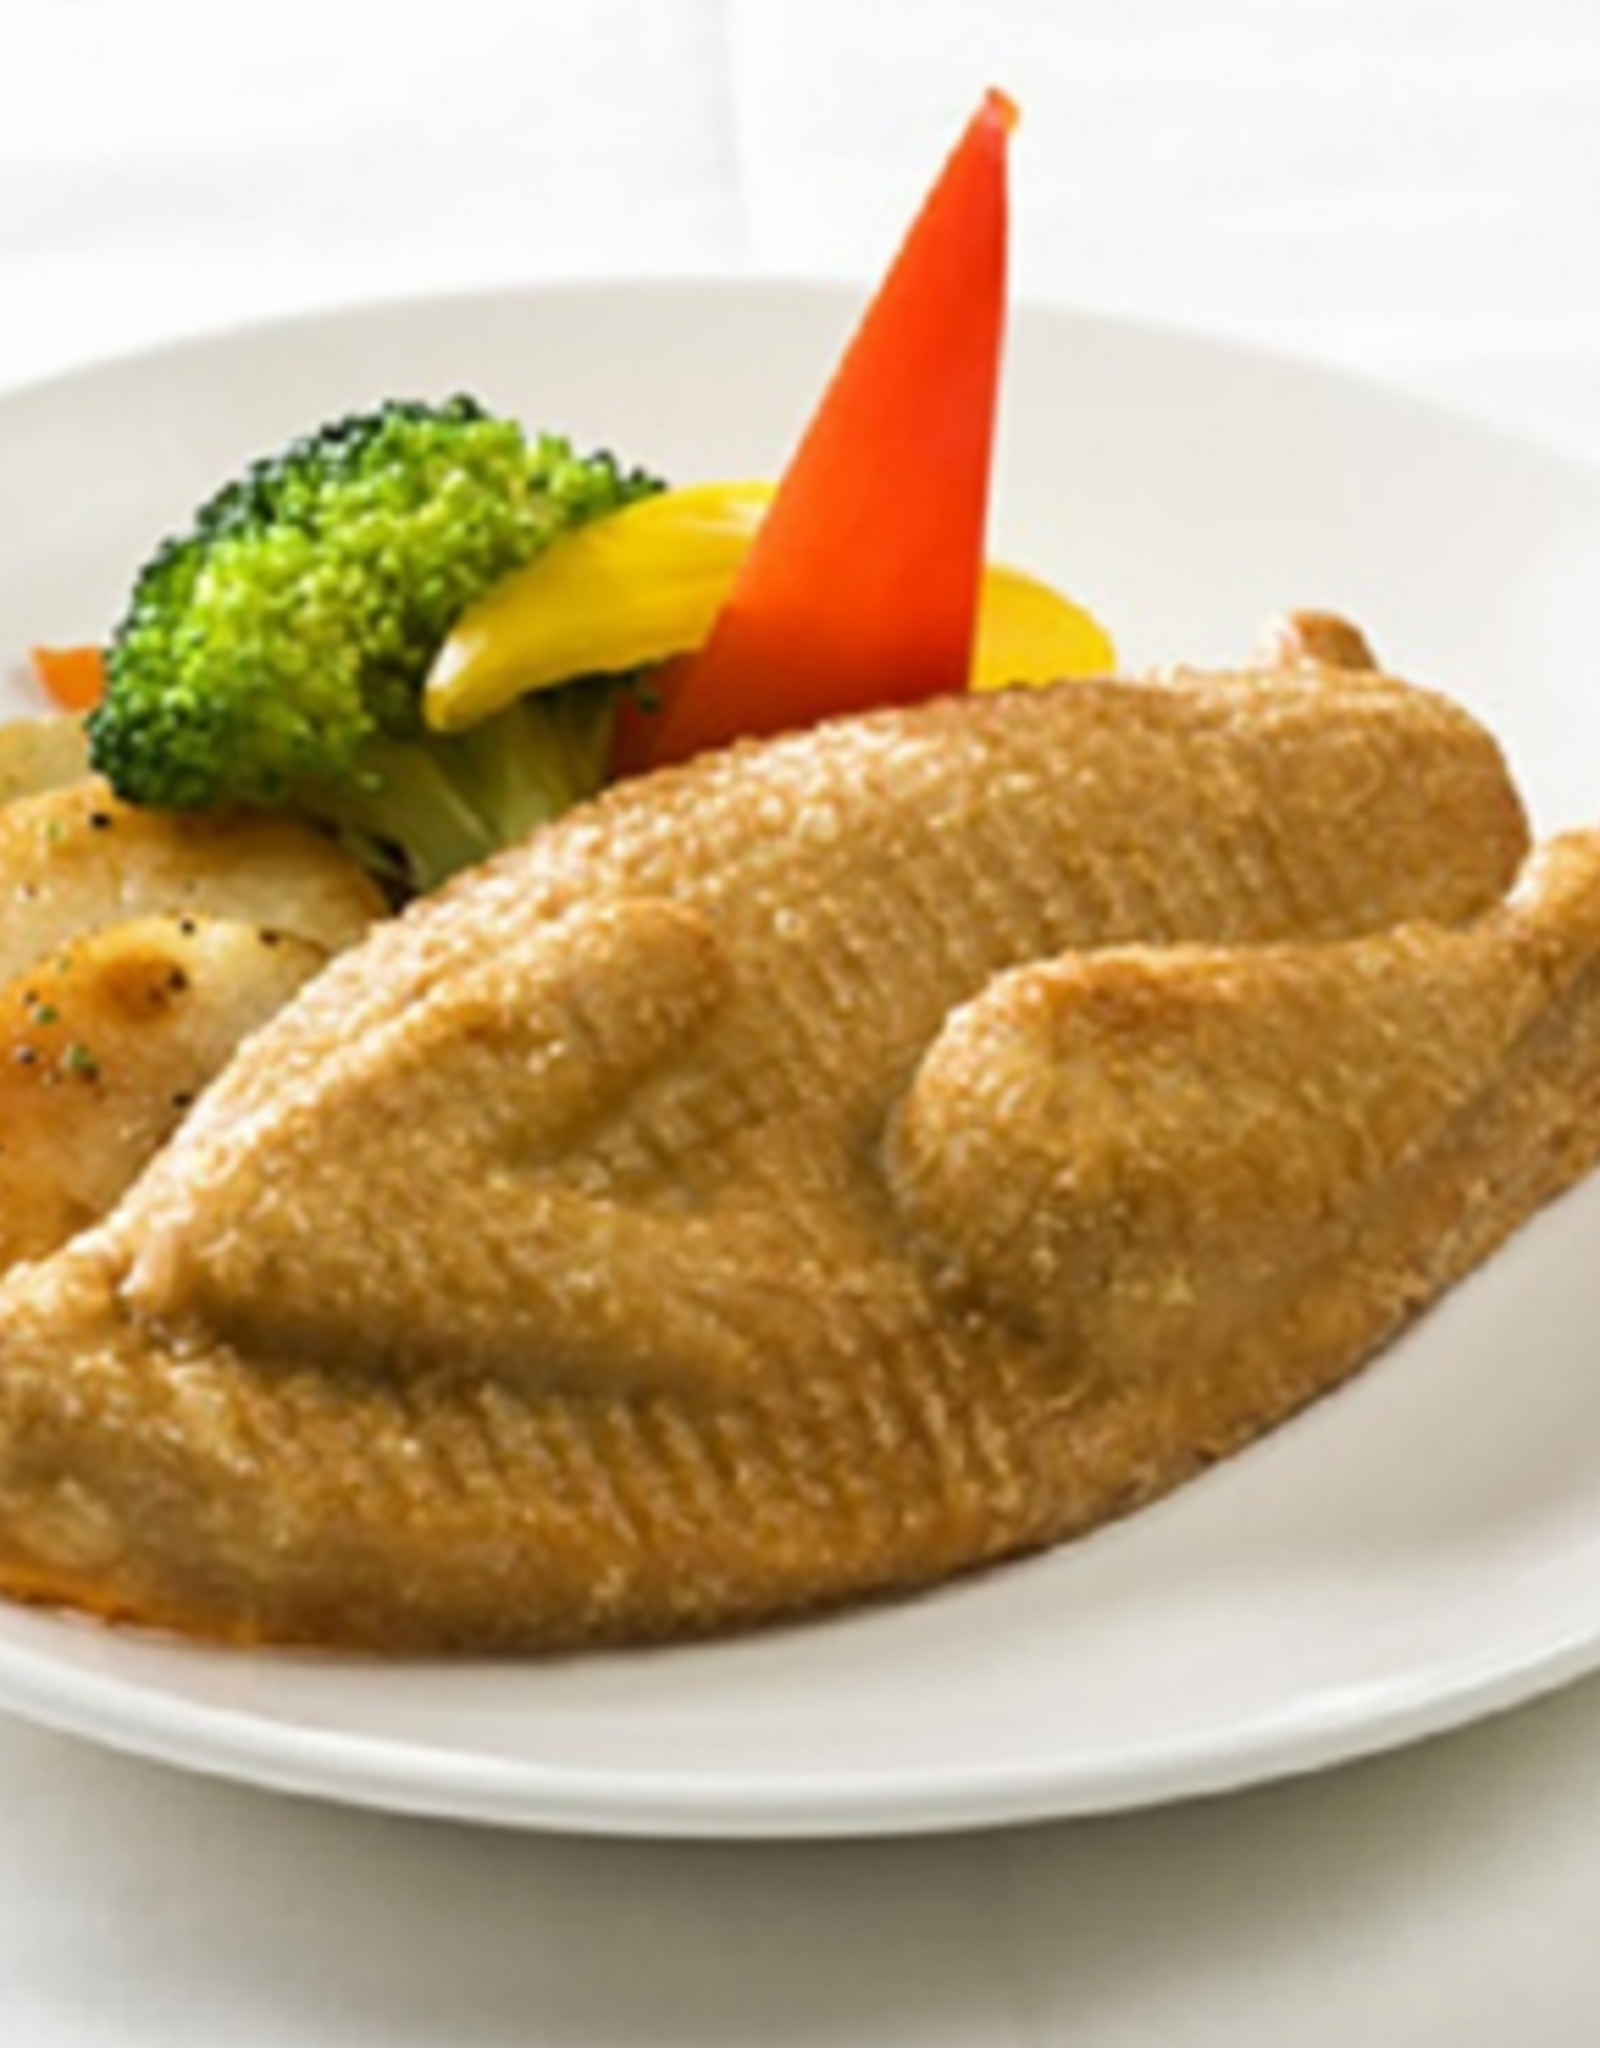 Vegefarm * 松珍 (VF) Vege Half Chicken Breast (L)*(松珍) 香妃素雞 (L)